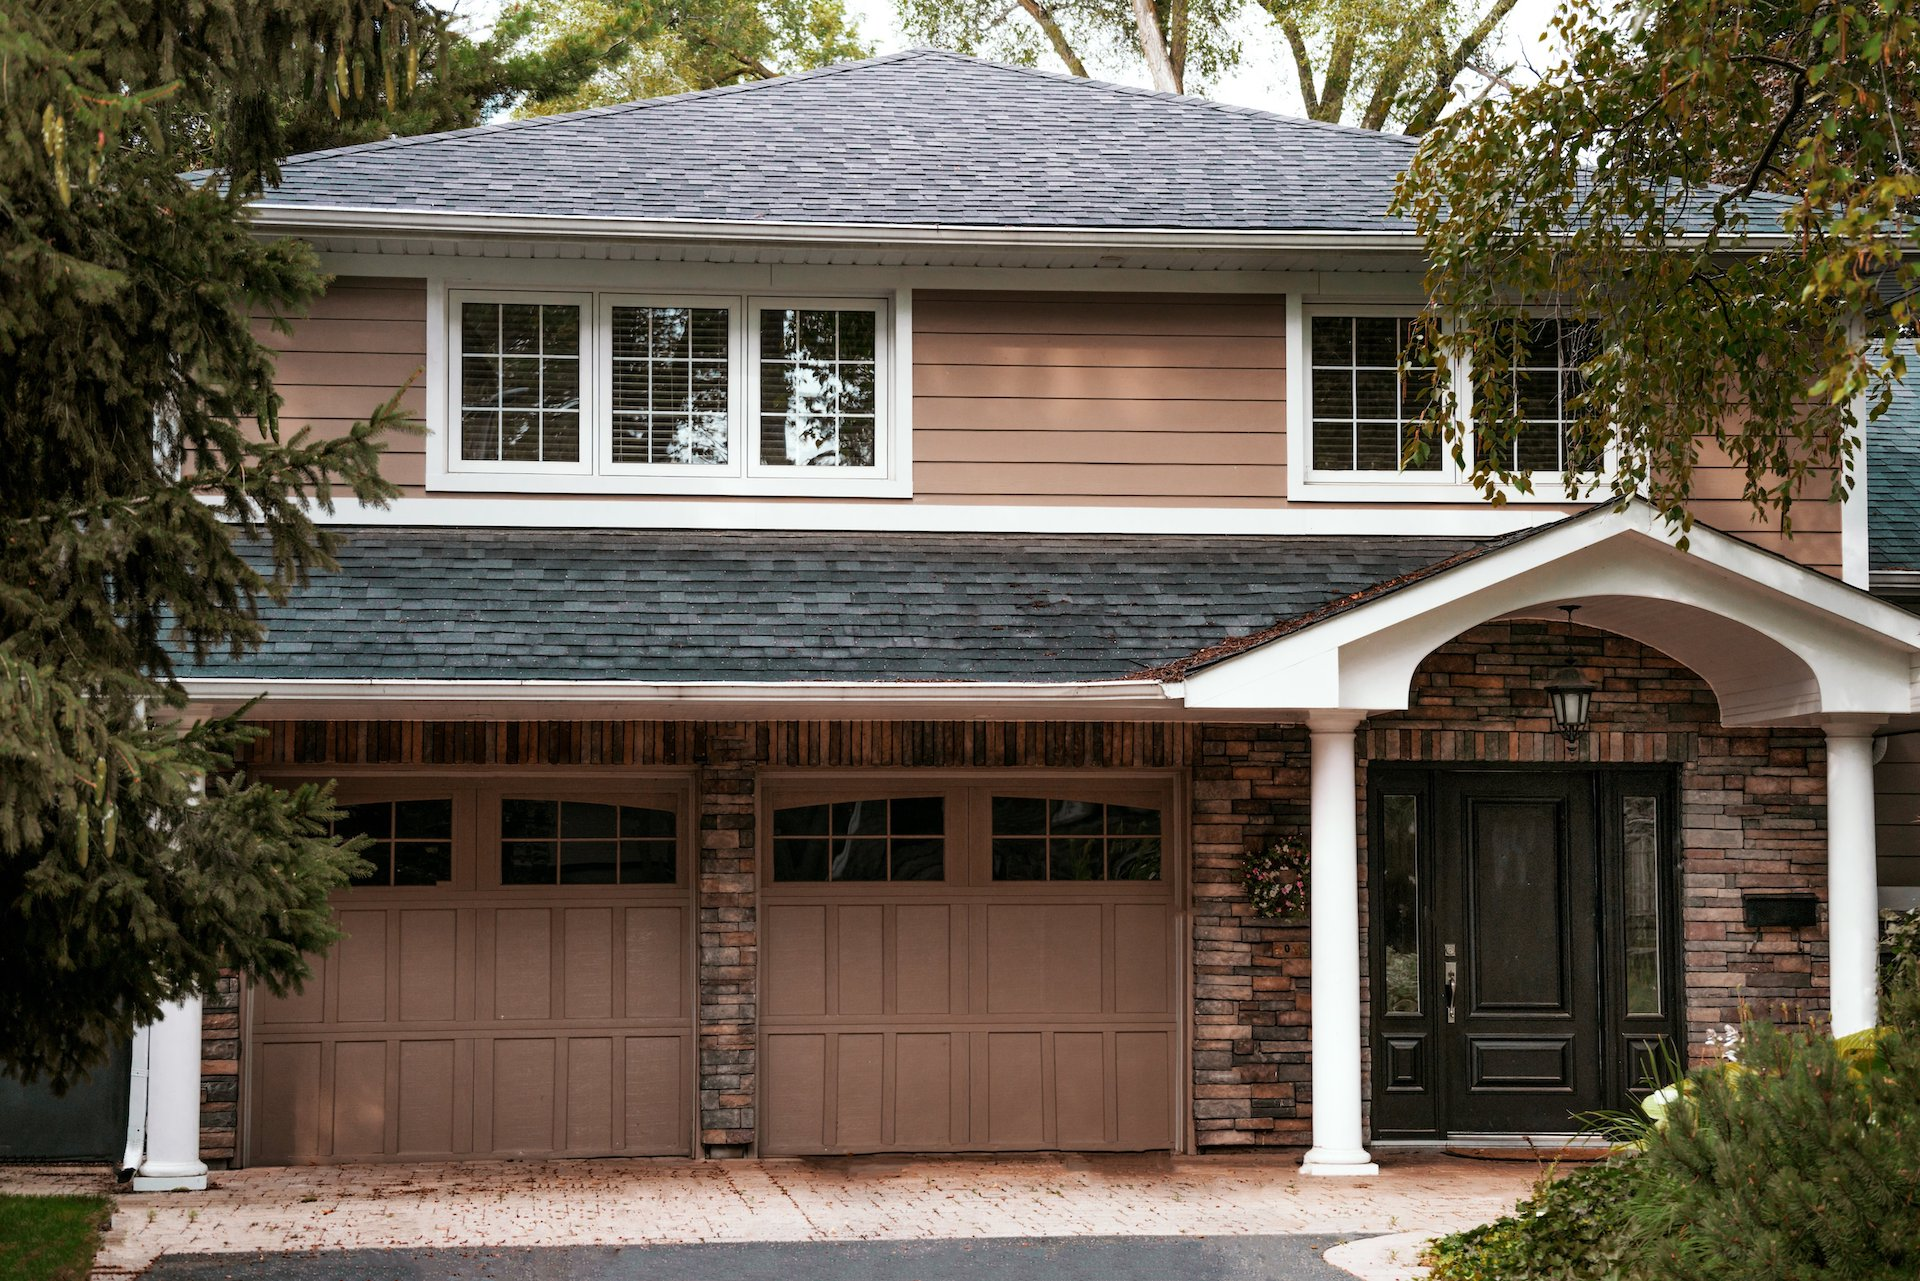 house-with-a-garage-single-family-rental